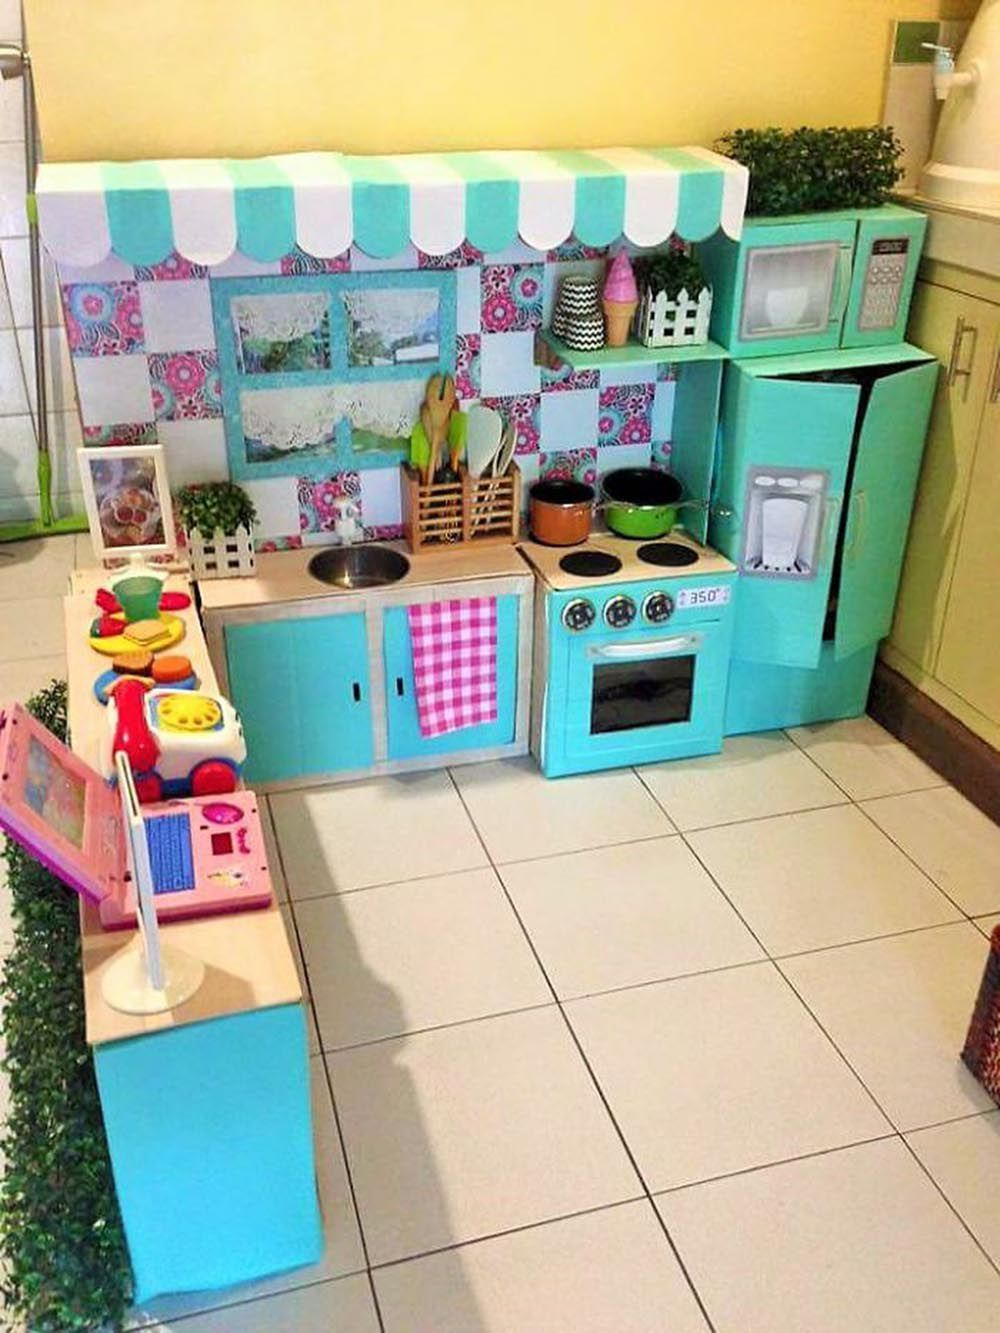 Mum builds incredible toy café out of cardboard boxes for daughter ...